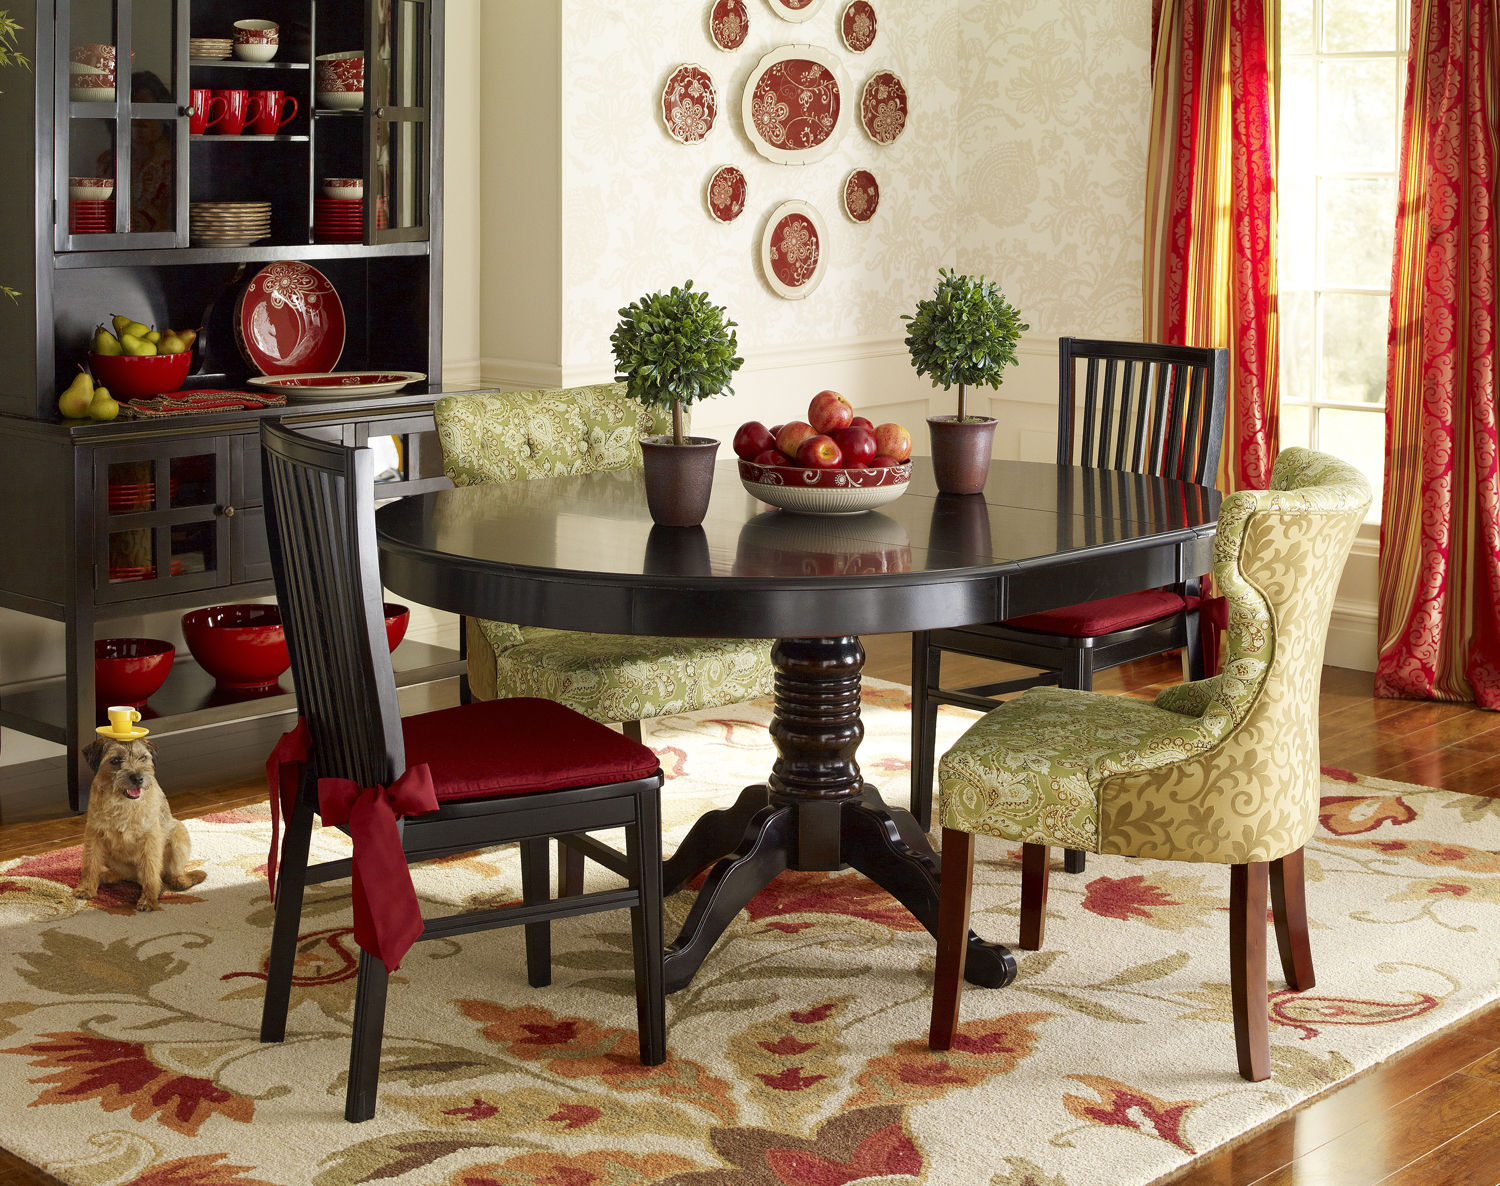 Pier 1 Dining Room Centerpieces Of Dining Room Ideas Design Inpiration